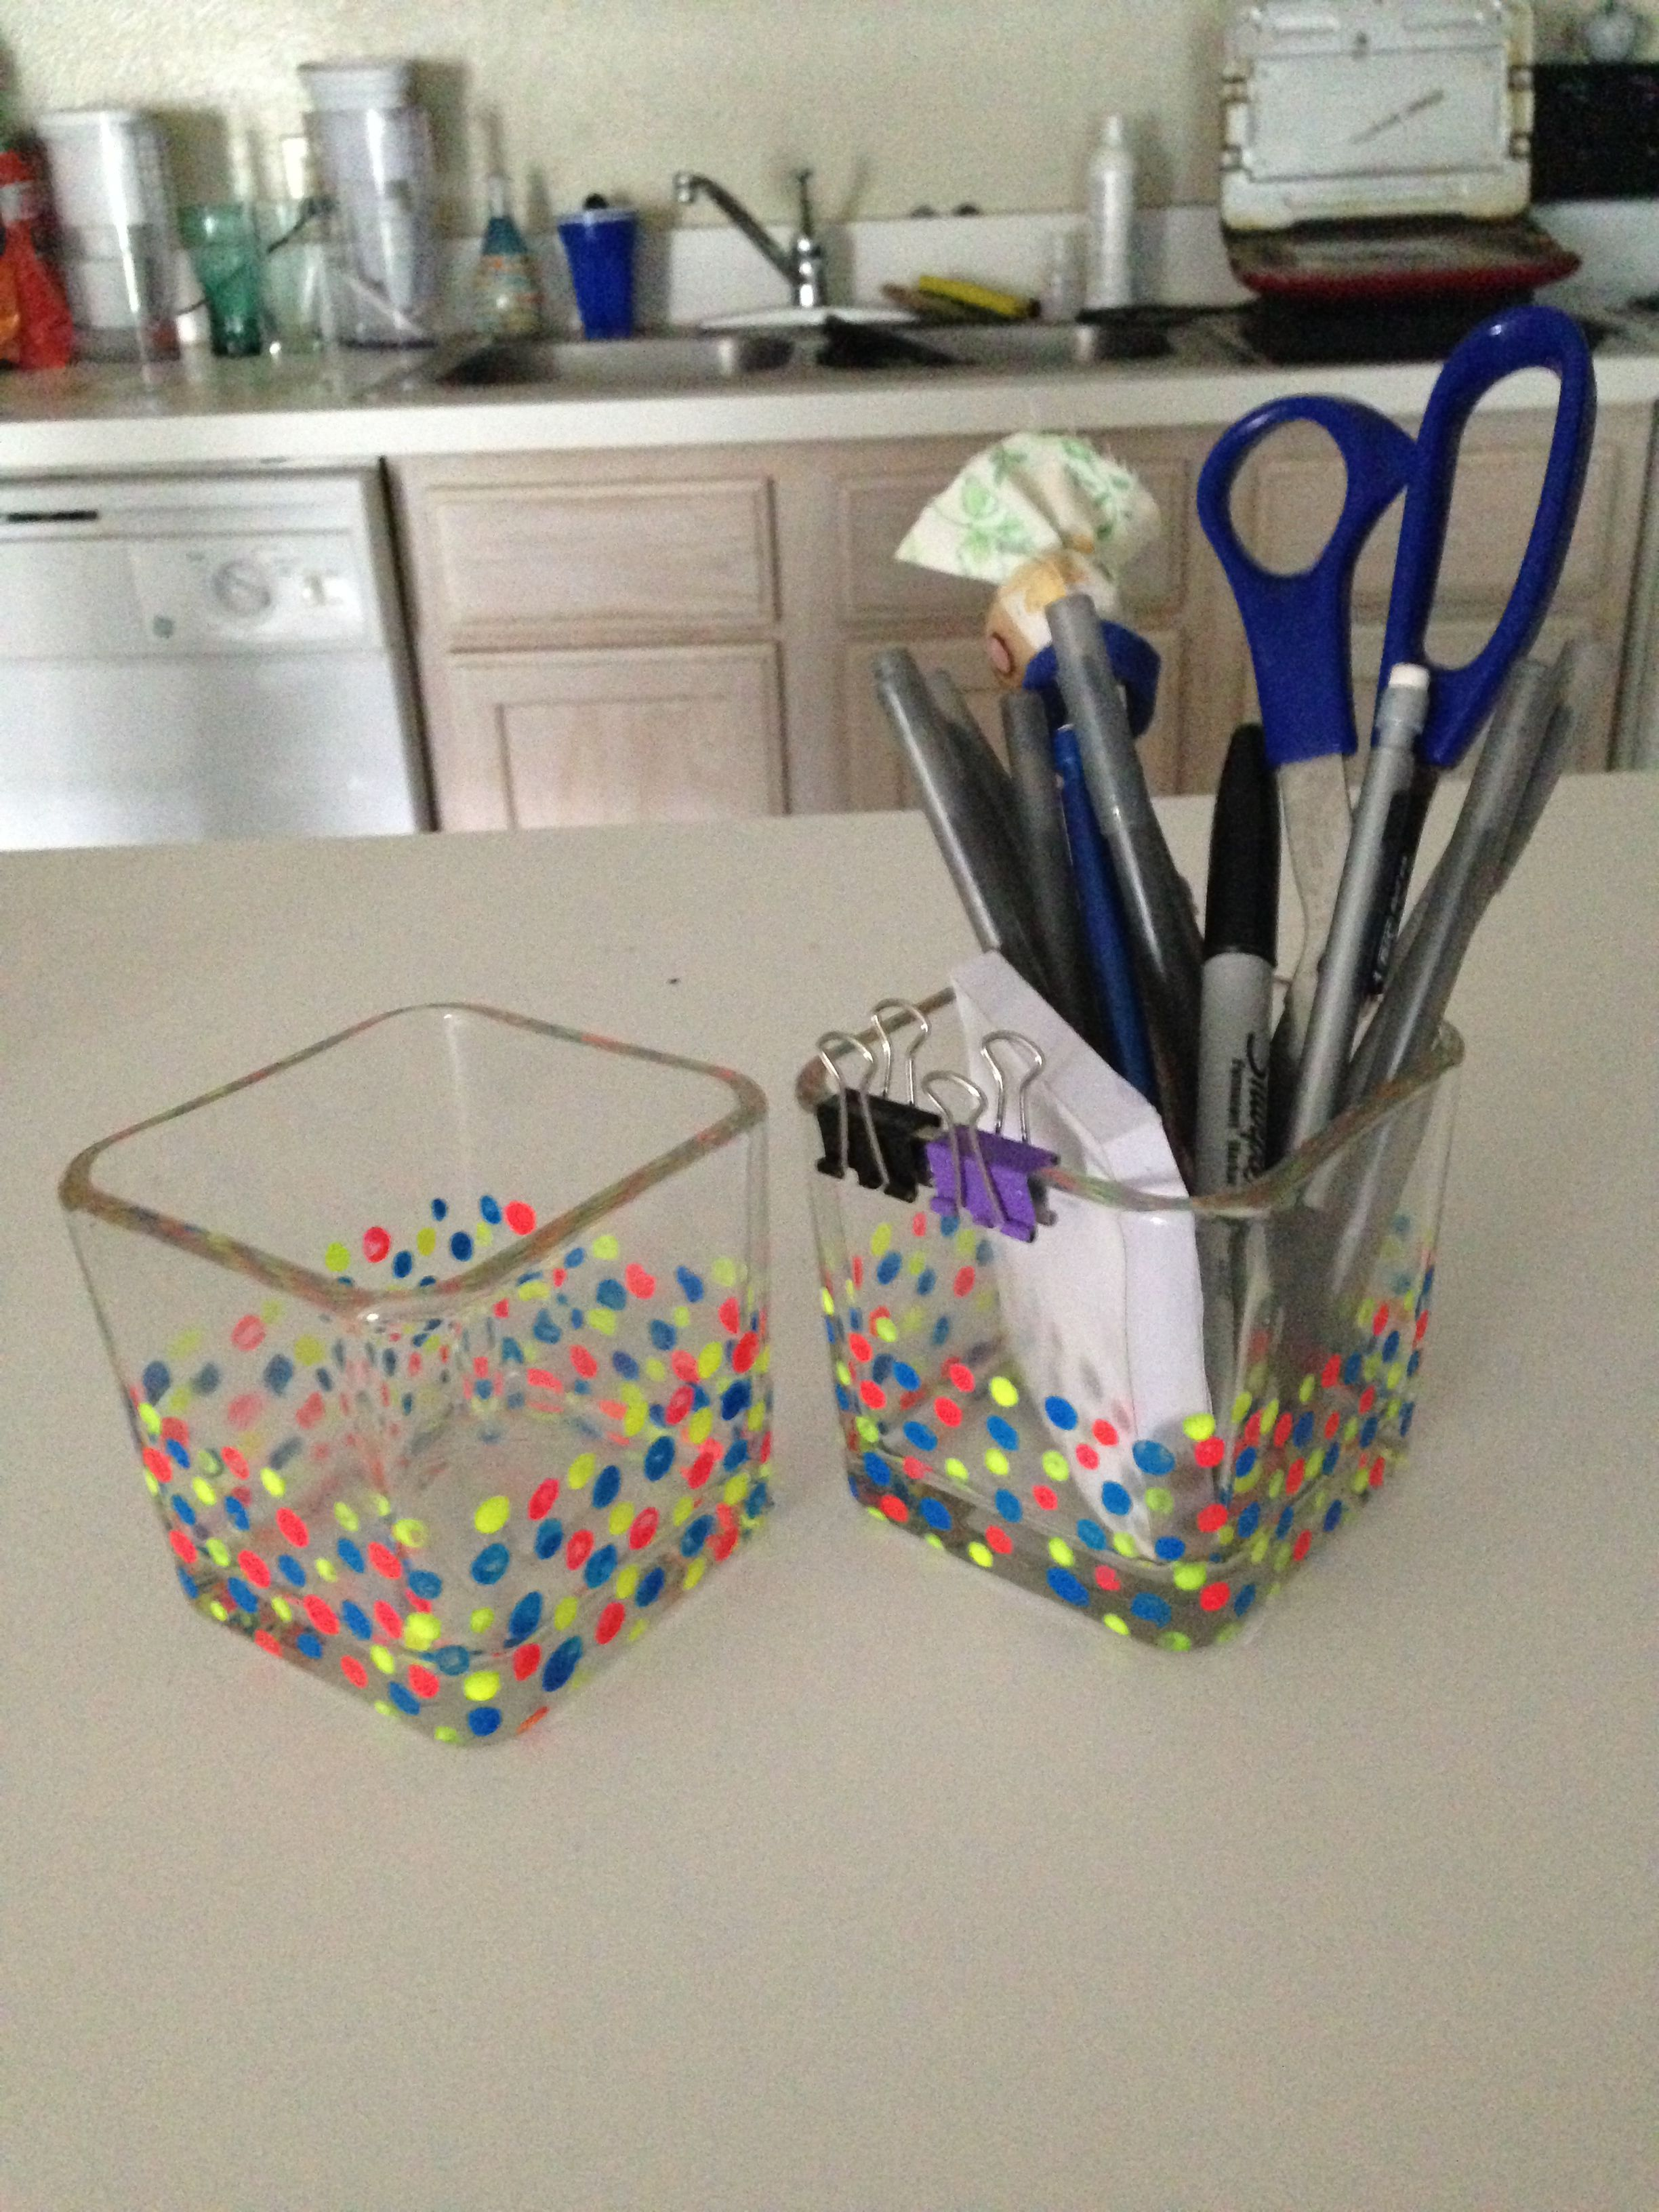 DIY pencil holders using dollar store vases and q-tips to paint.